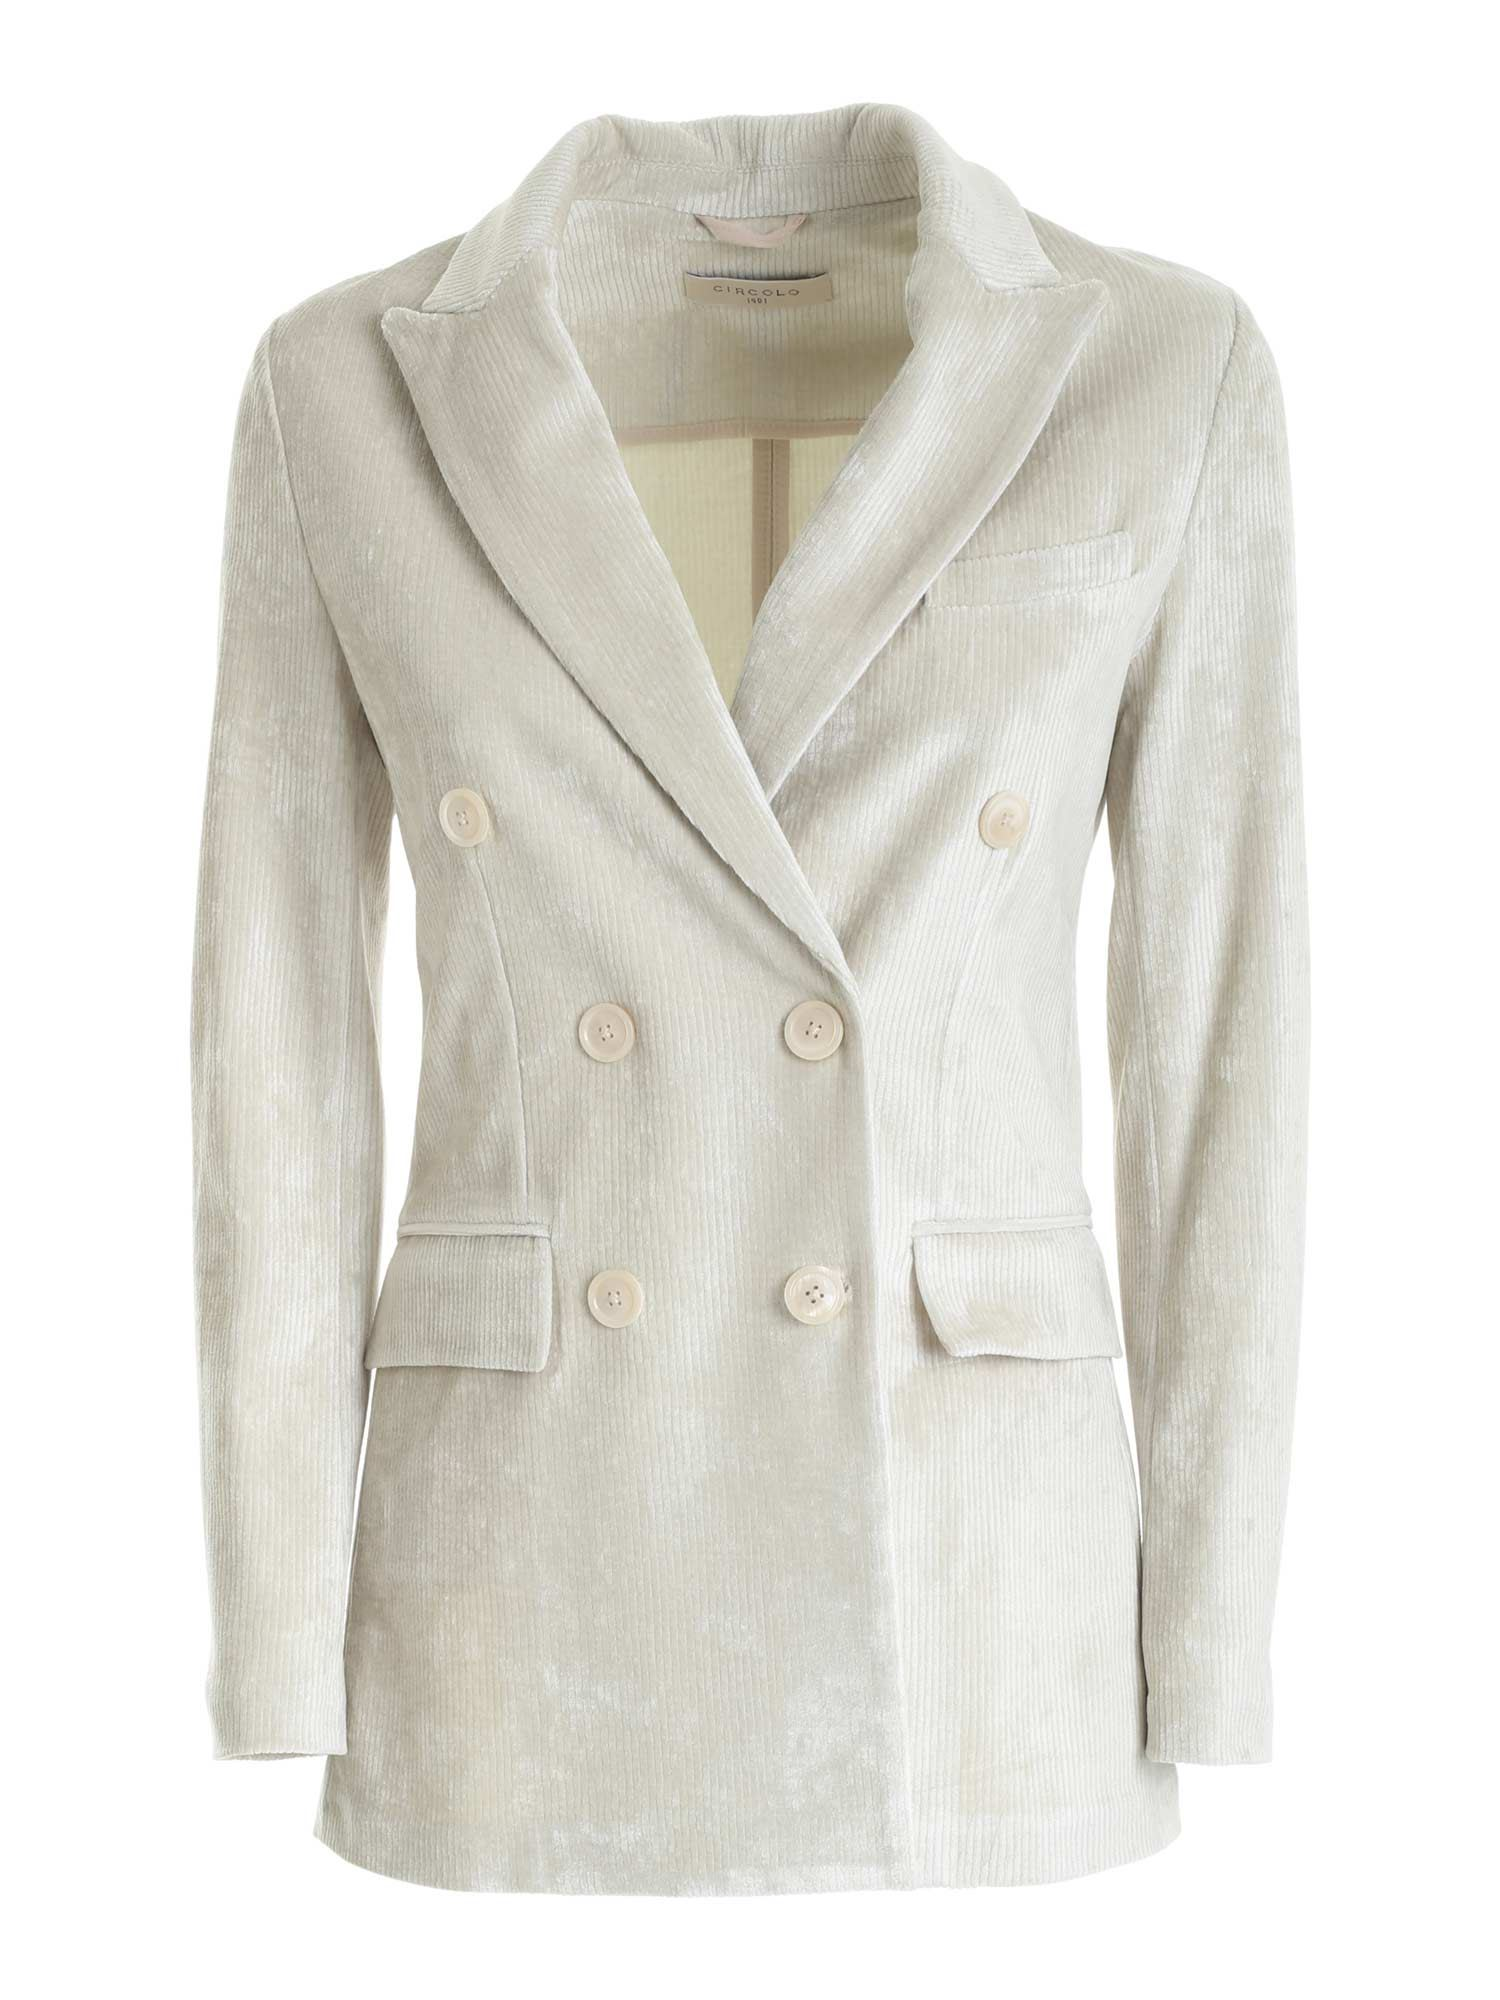 Circolo 1901 CORDUROY DOUBLE-BREASTED JACKET IN BEIGE